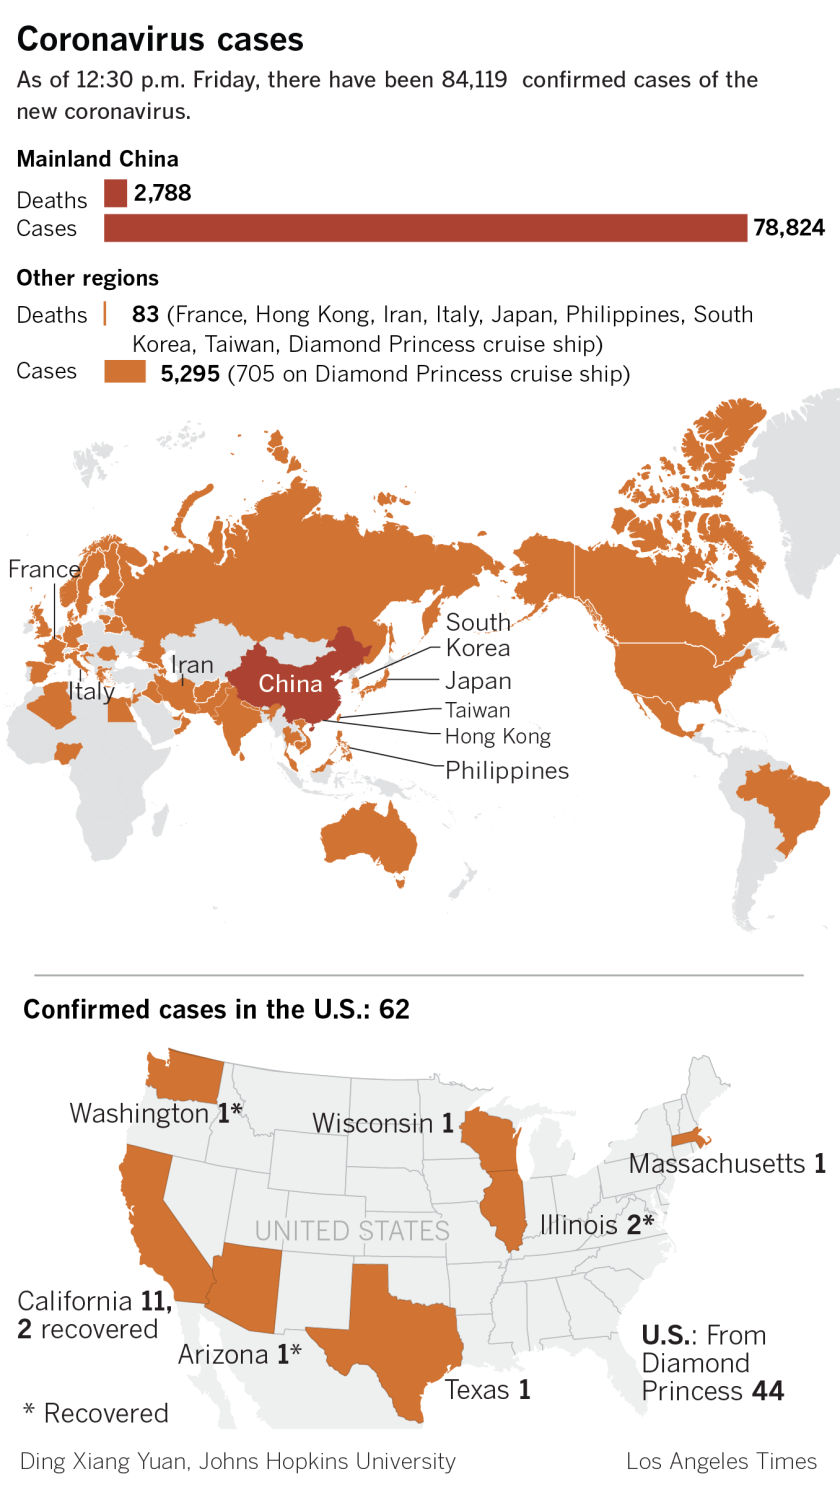 w10-la-sci-coronavirus-china-spreading.png